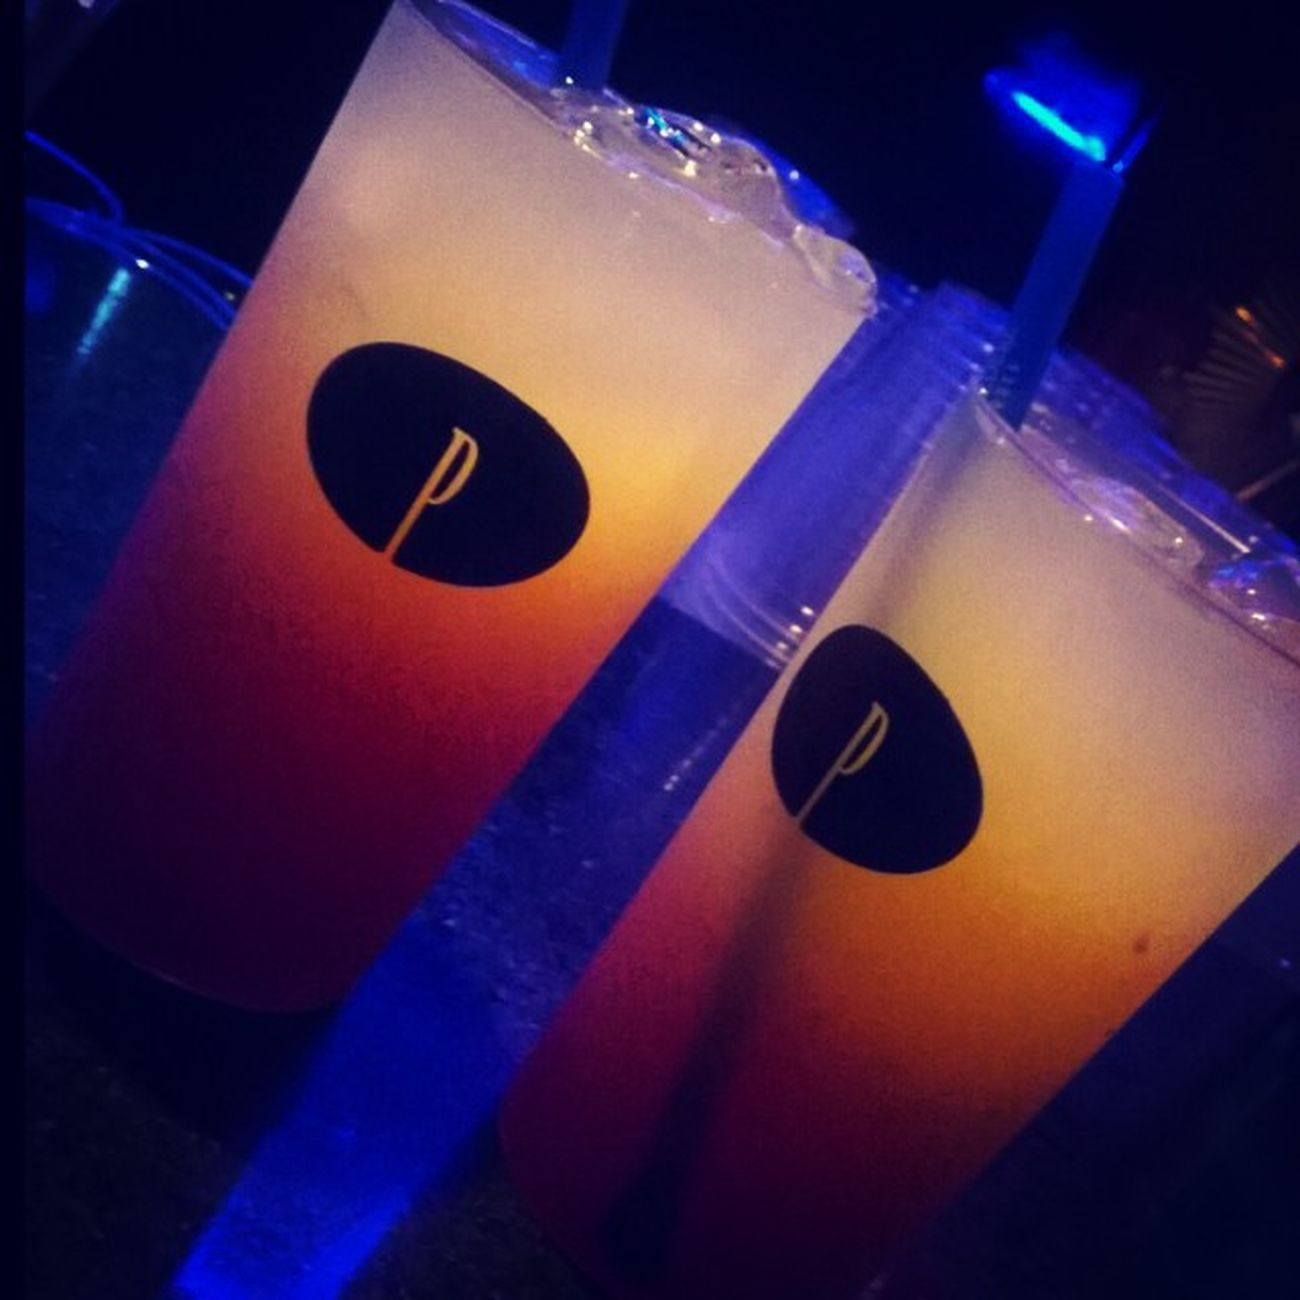 Dispensando legenda e somando sabor !!! @privilegebrasil o meu salve especial!!! Drinks PrivilegeJF Felguk Trips ontheroad sexyonthebeach enjoyyourlife cheers party nightparty